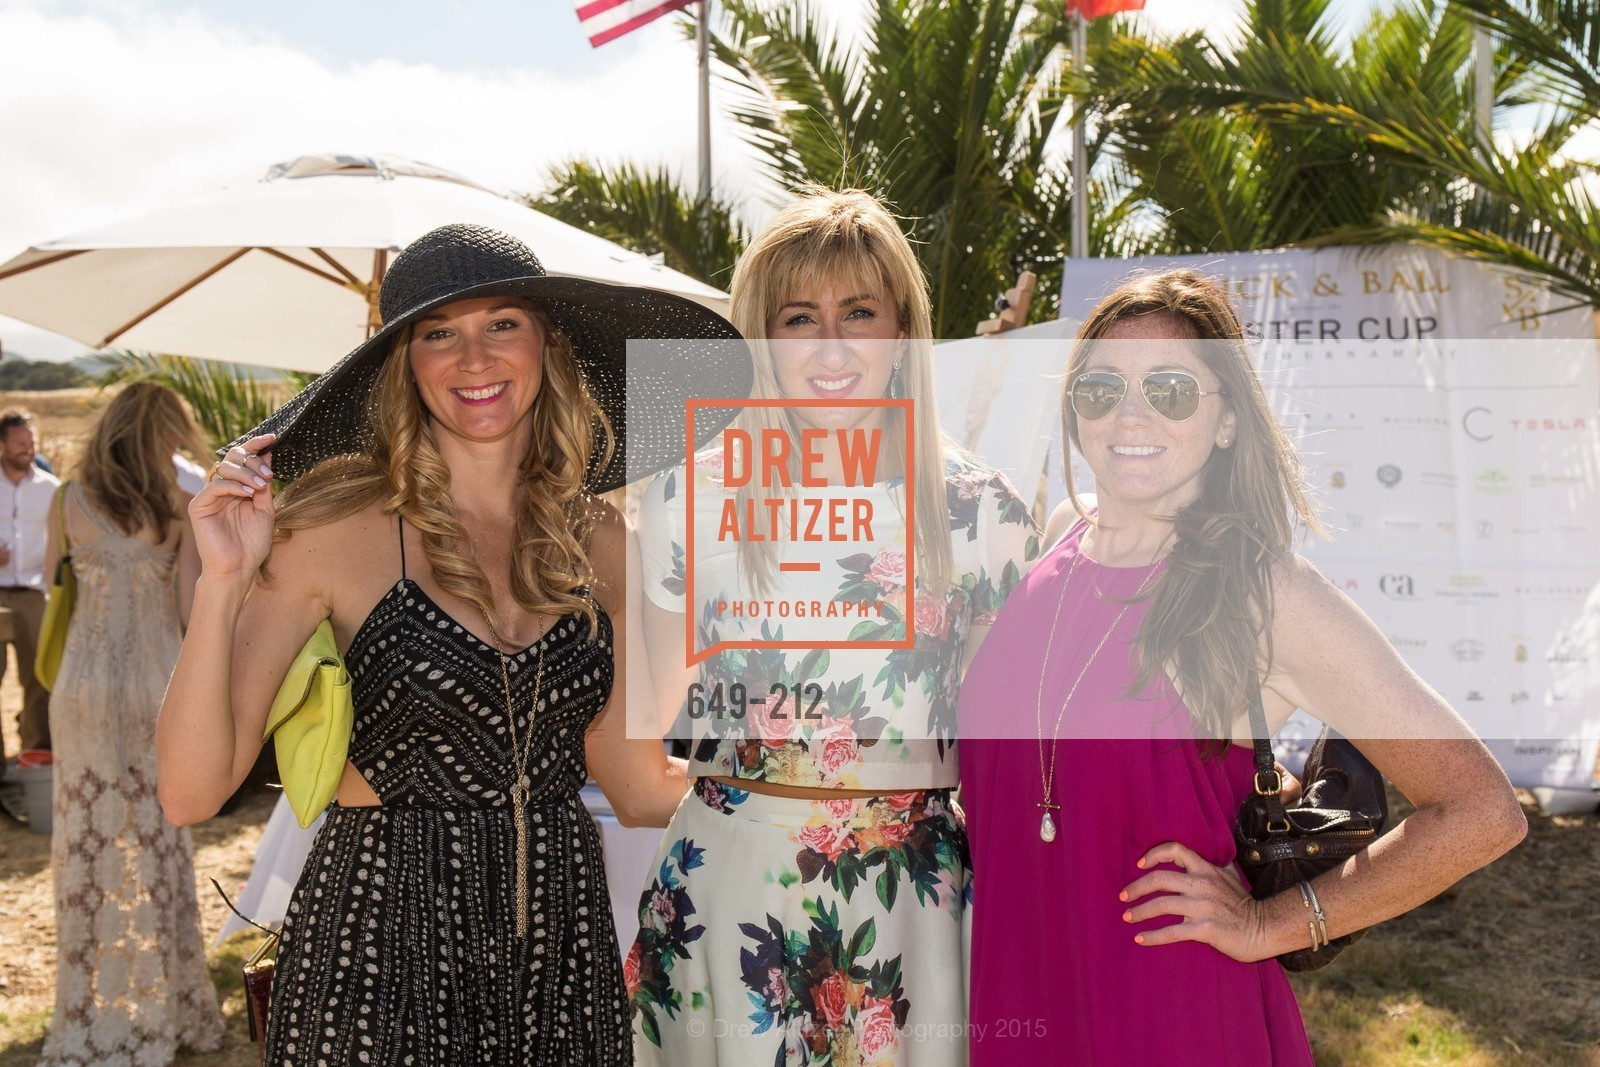 Brandy Anderson, Teah Abbott, Alex McGowan, Stick & Ball Oyster Cup Polo Tournament, Cerro Pampa Polo Club, July 25th, 2015,Drew Altizer, Drew Altizer Photography, full-service agency, private events, San Francisco photographer, photographer california